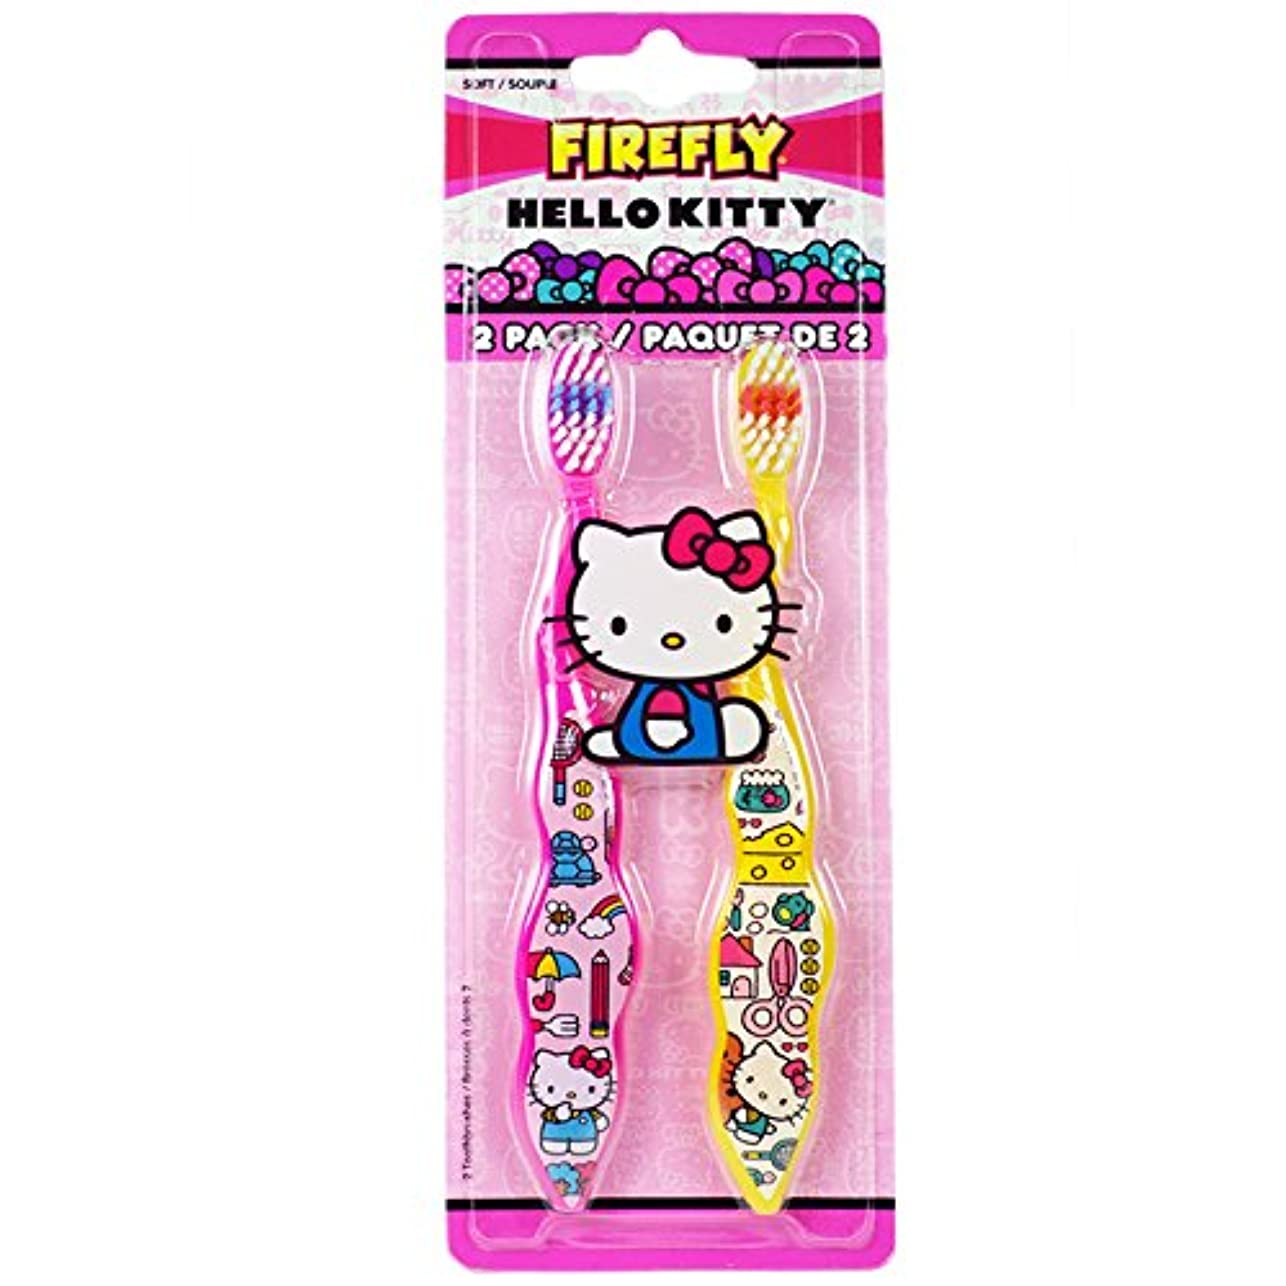 一節劇作家悪名高いDr. Fresh Firefly Hello Kitty Toothbrush, Soft by Firefly